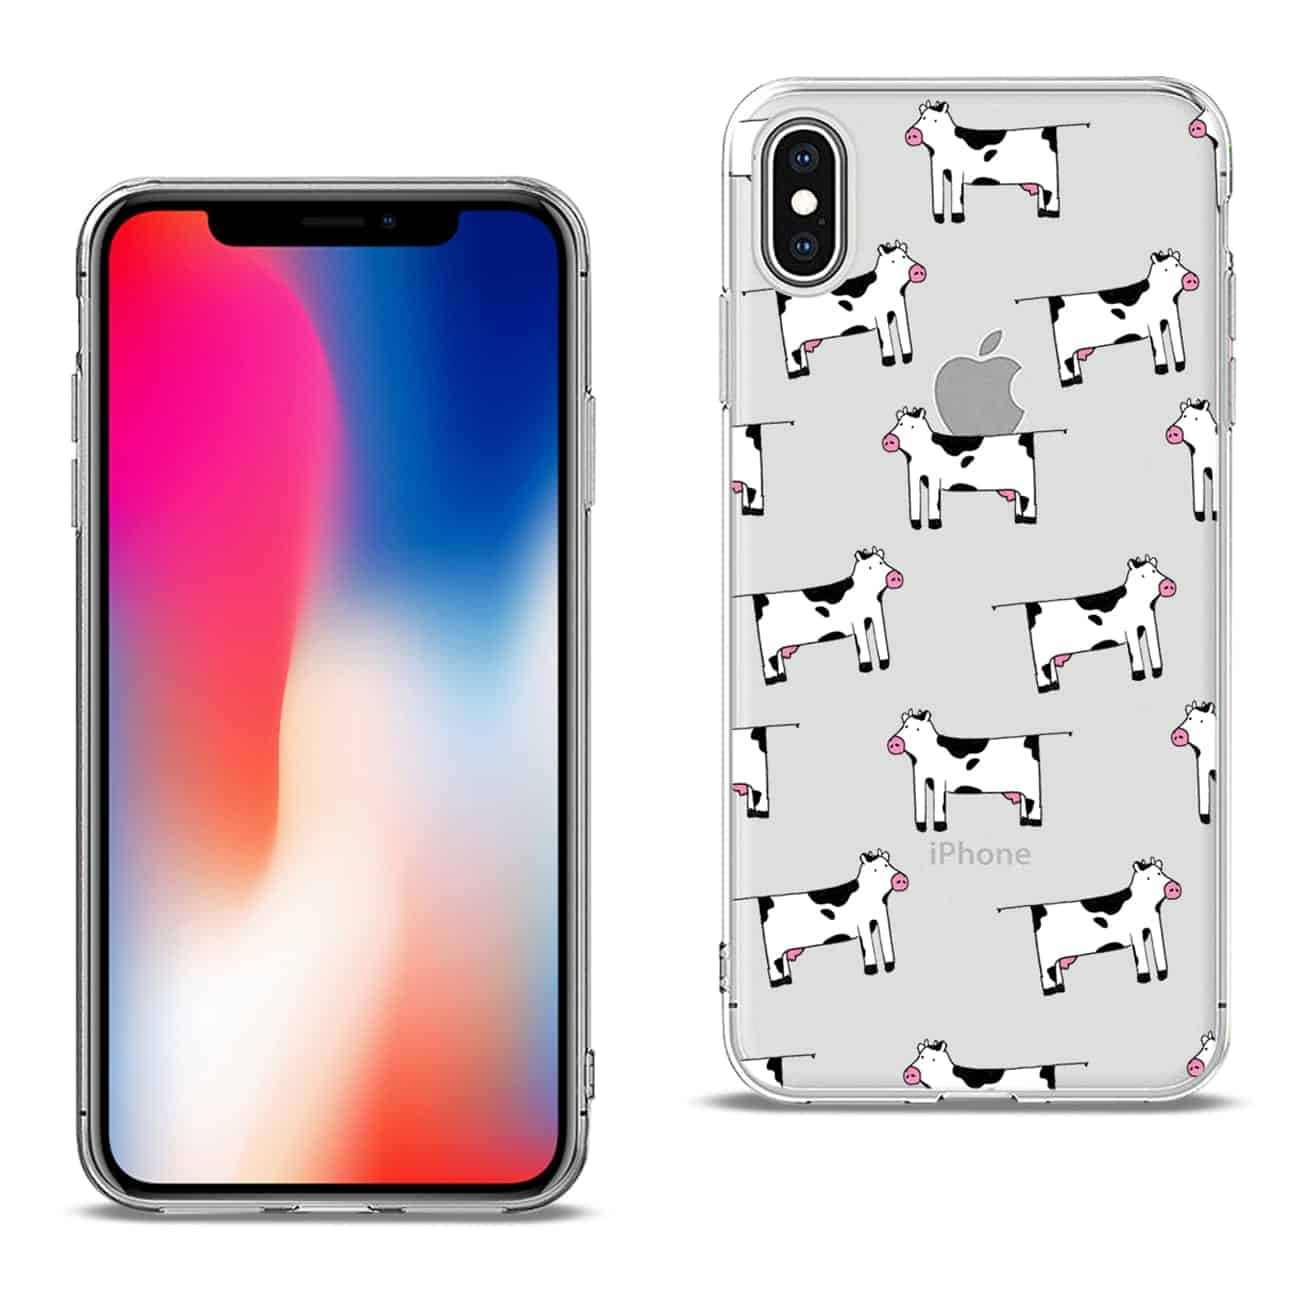 Apple iPhone X Design Air Cushion Case With Cow In Blue